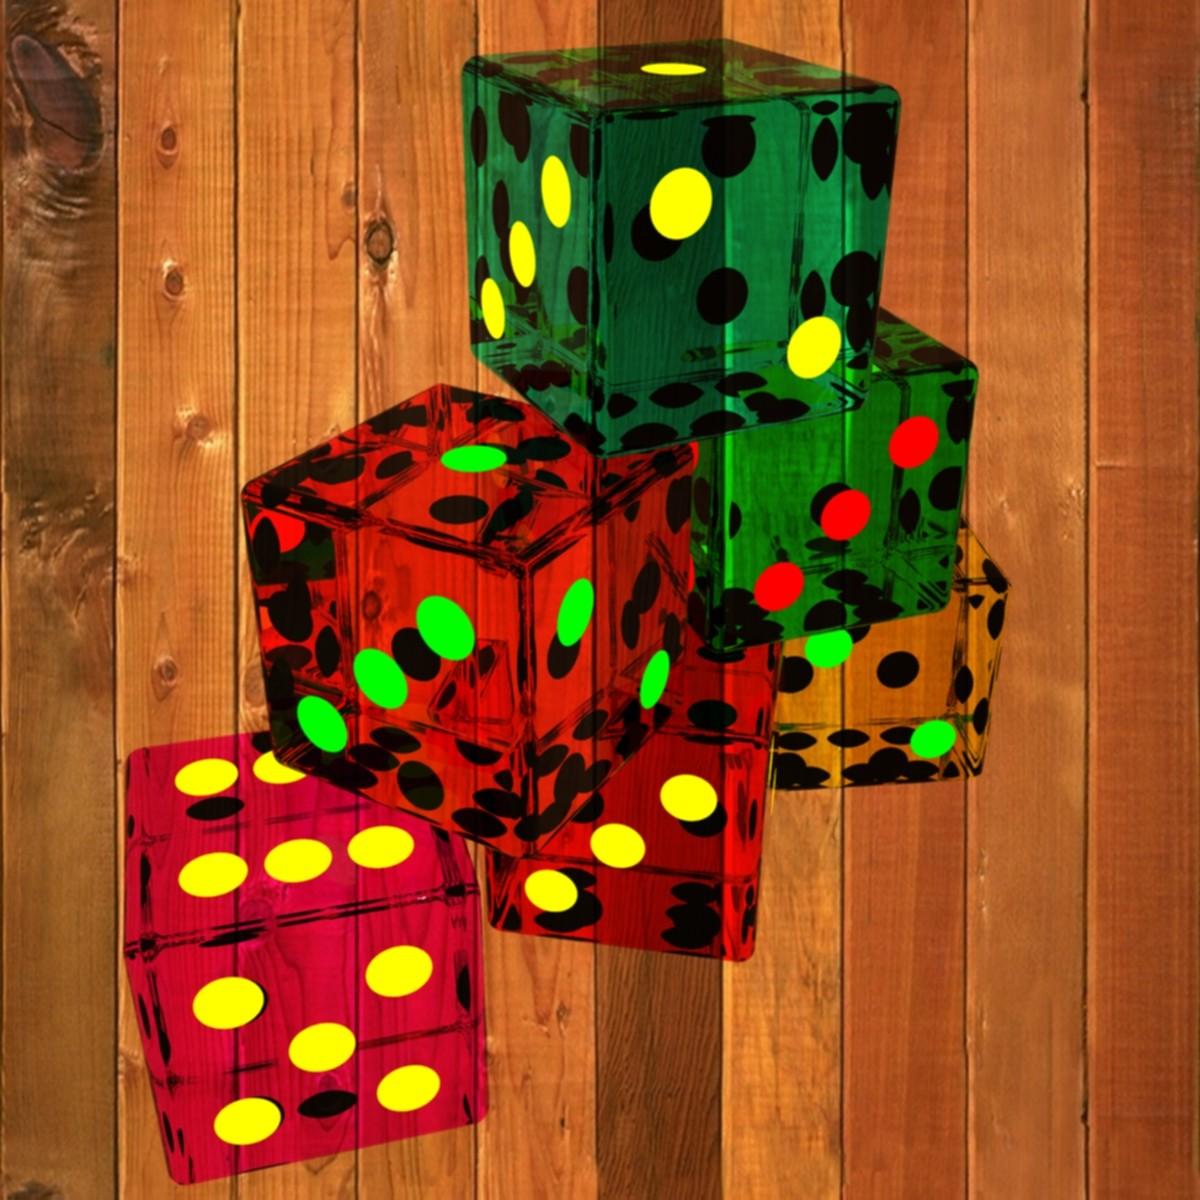 color_glass_dice.jpg